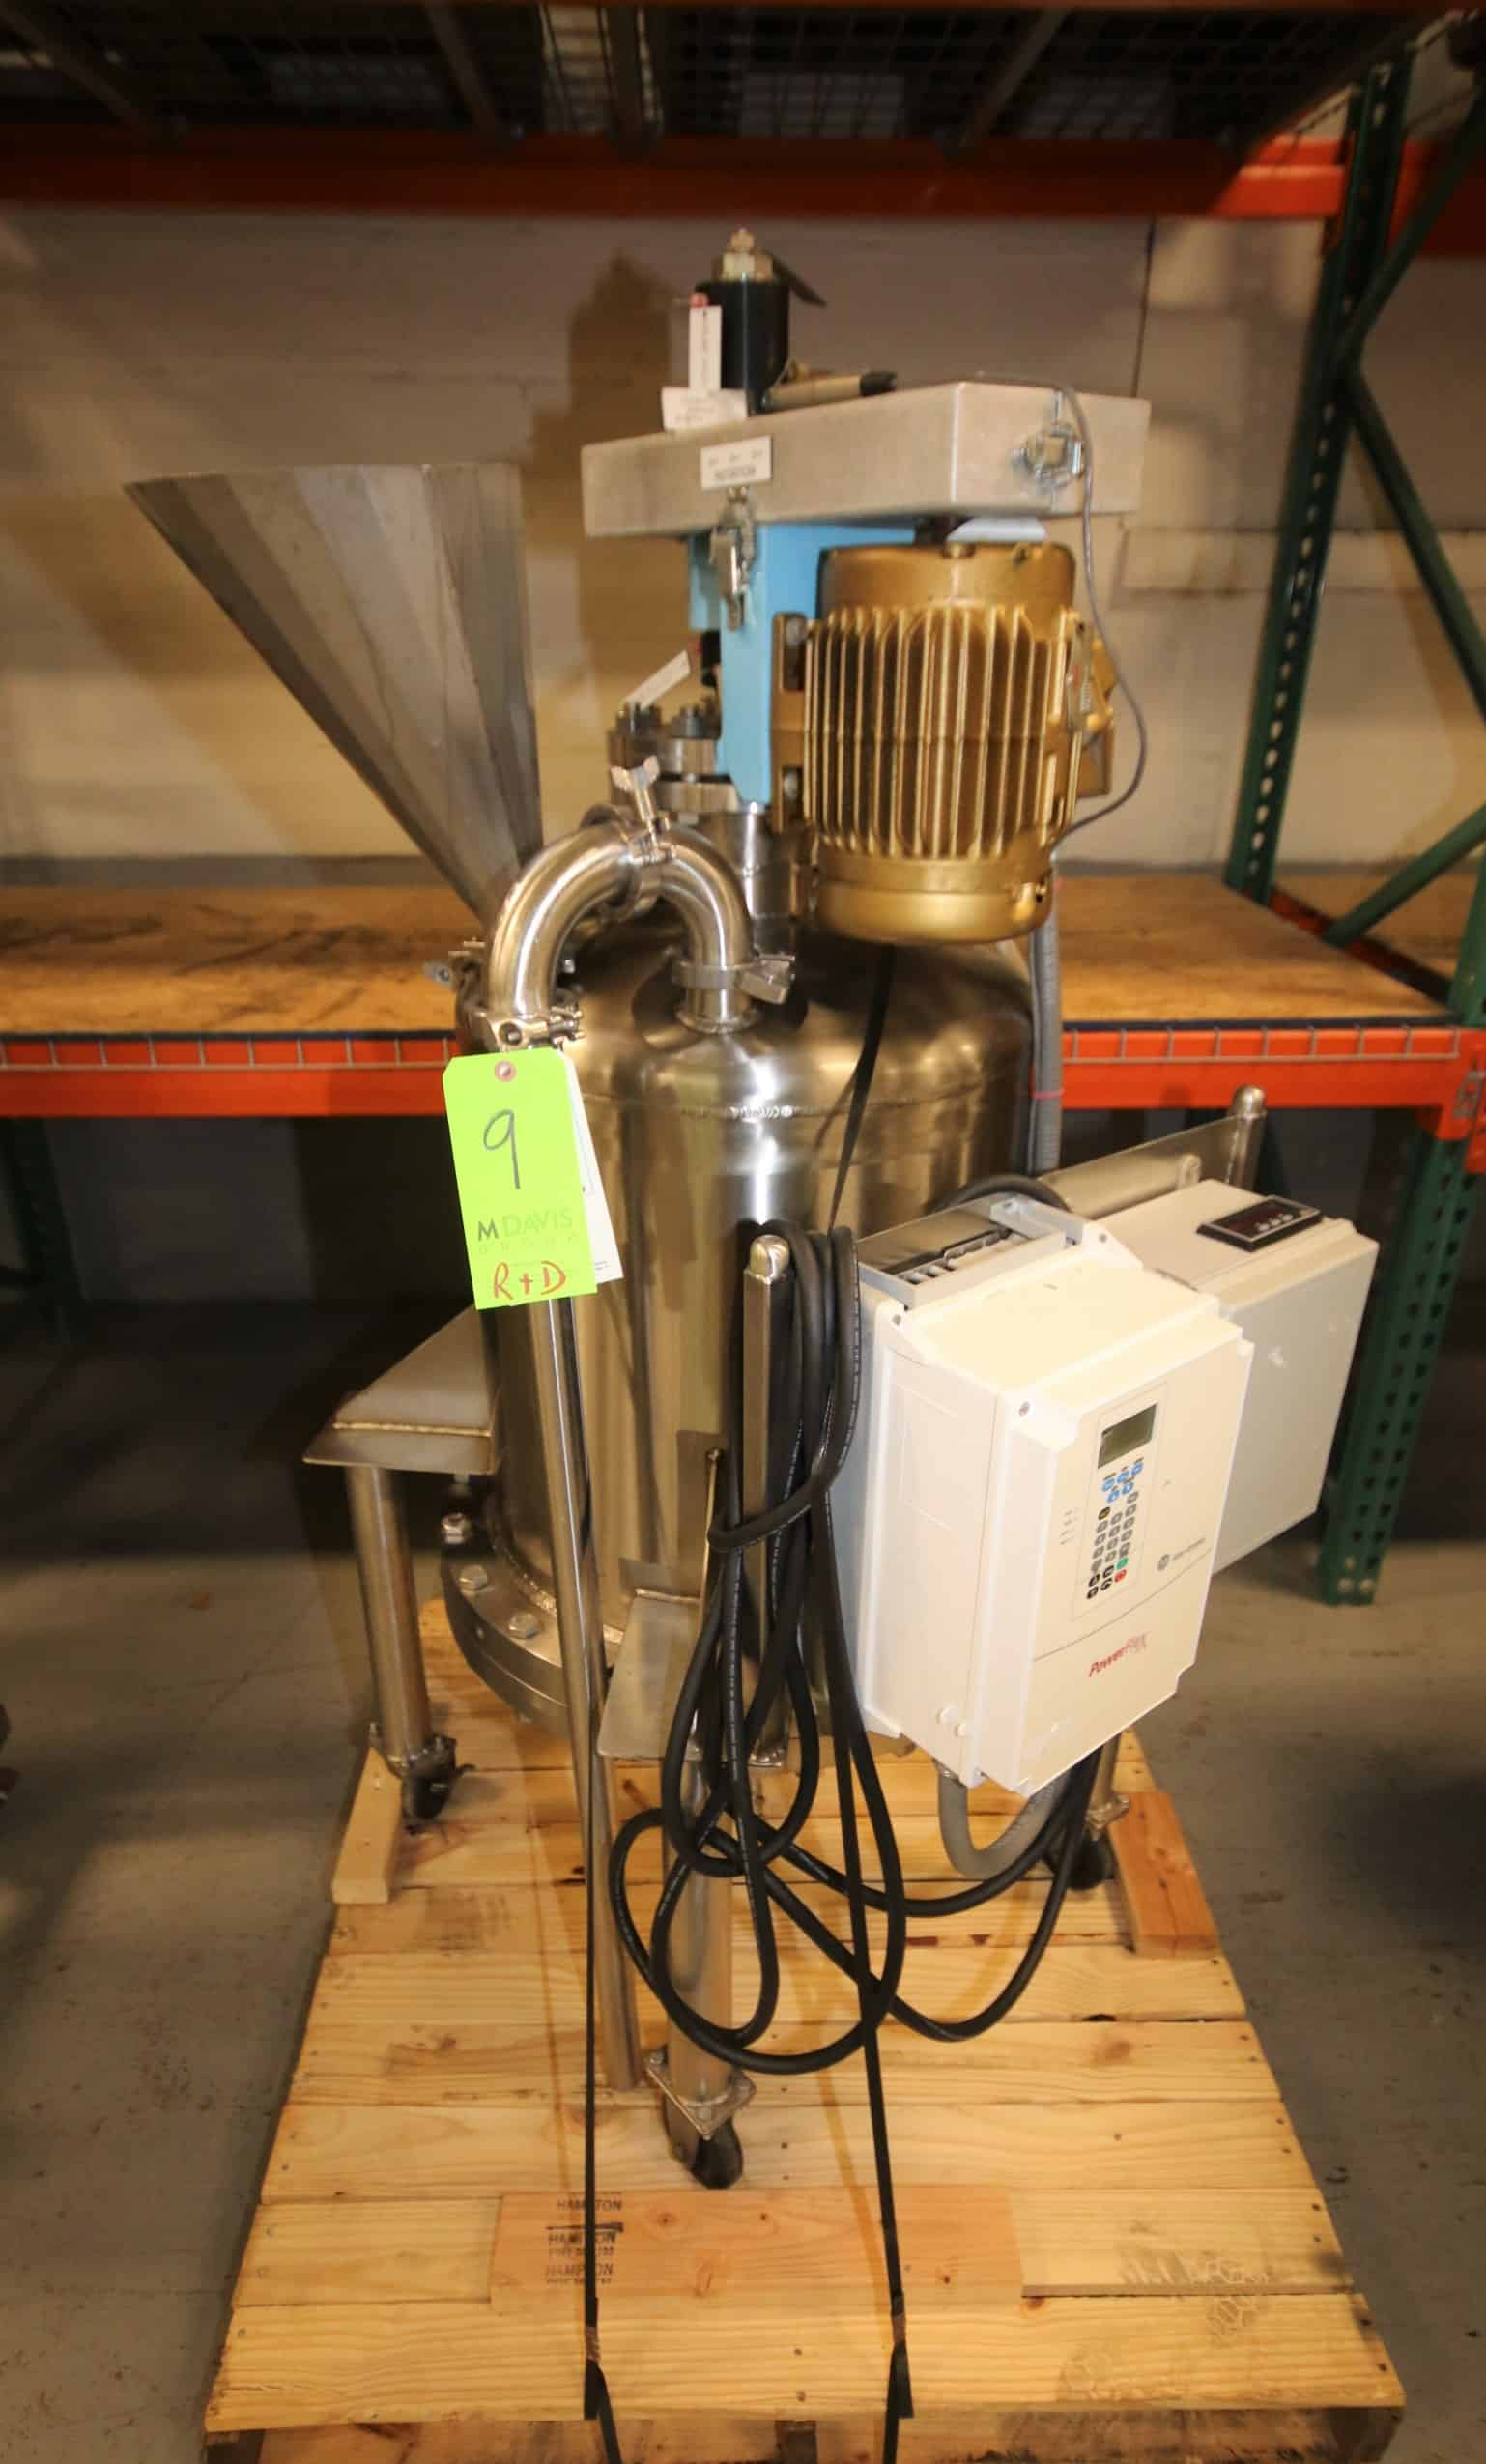 "Watson / OCS Aprox. 30 Gal. Portable Pressurized S/S Reactor Tank, SN 2342-2, MAWP 100 Psi @ 350 Degrees, with 1 hp High Shear Agitator, 1150 RPM, 230/460V 3 Phase, Includes Top Mounted S/S Funnel & Sight Glass, Bottom 1 1/2"" CT Discharge Line with Butterfly Valve & Allen Bradley Powerflex 70 On-Board VFD Controller"